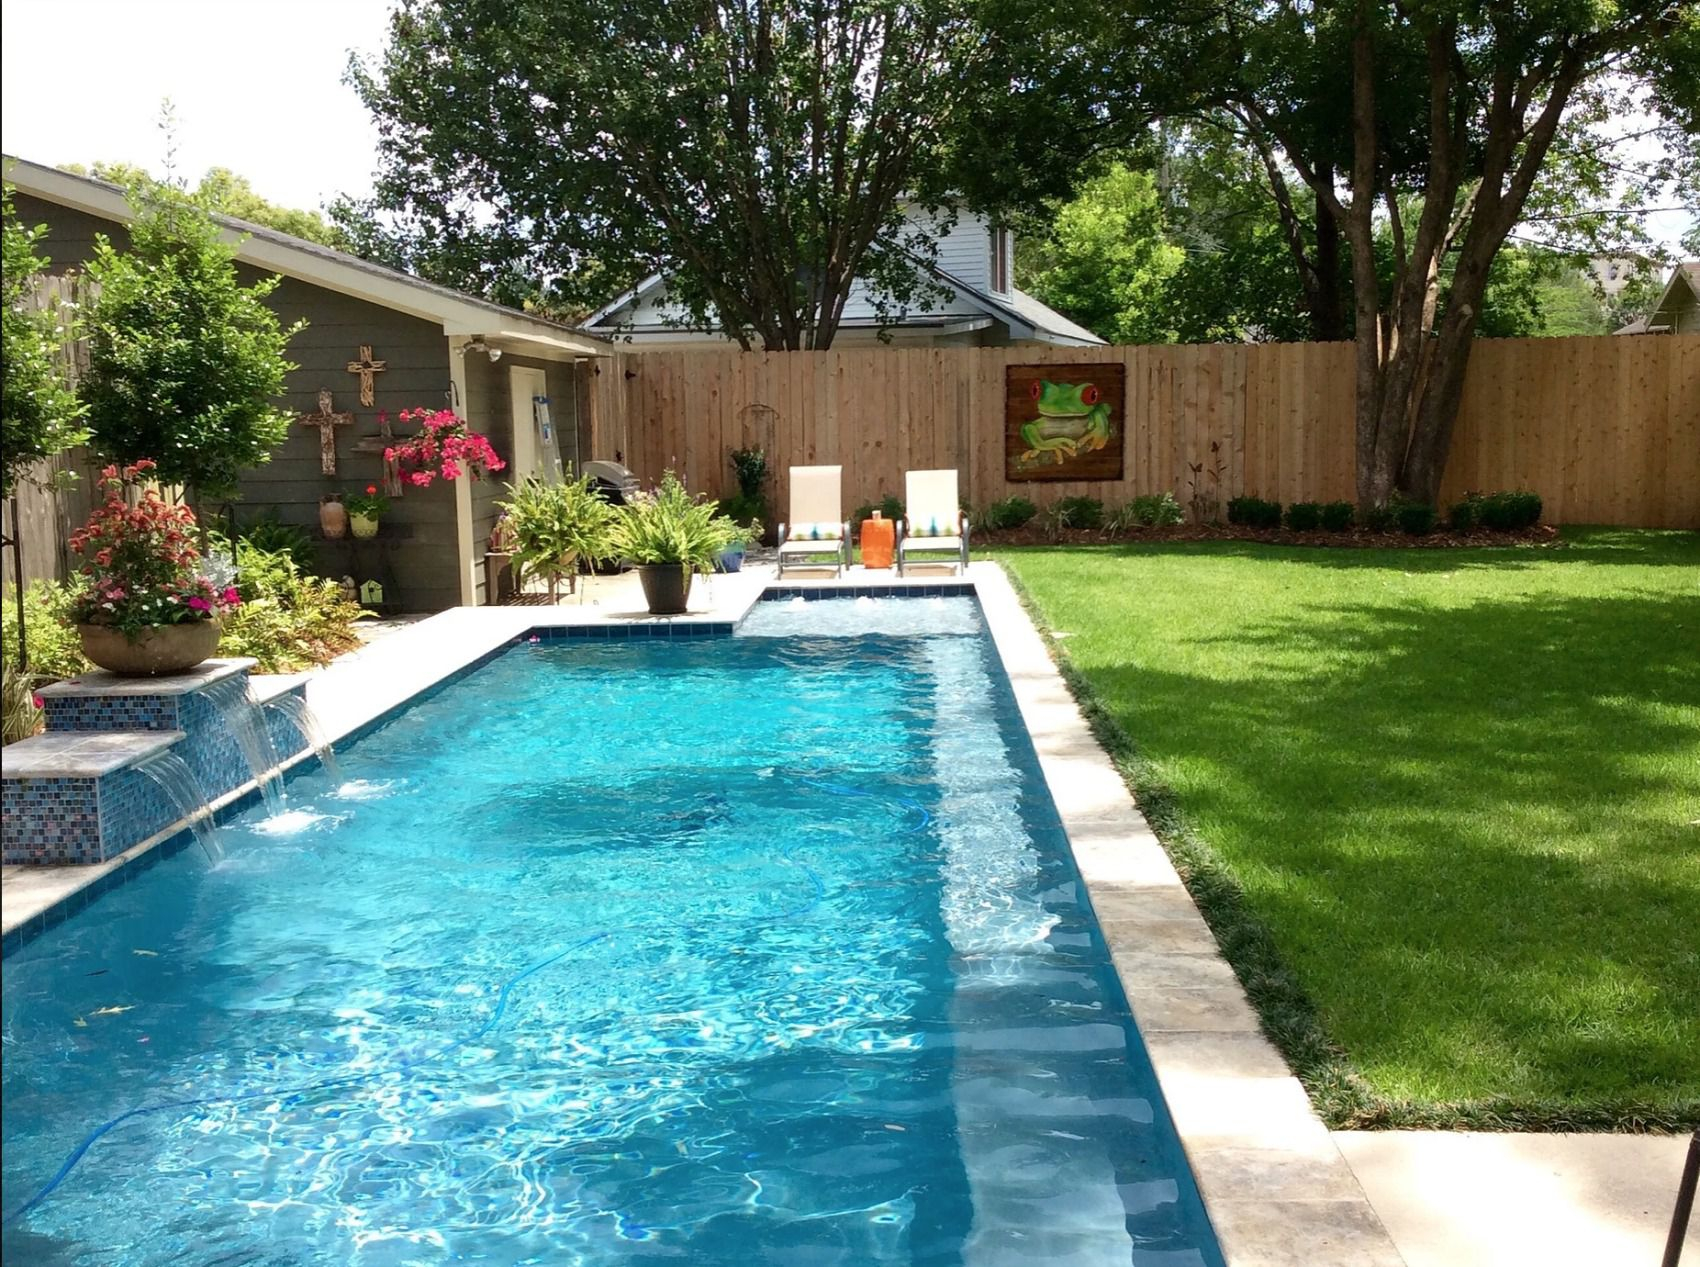 50 Backyard Landscaping Ideas To Inspire You pertaining to 11 Clever Concepts of How to Improve Small City Backyard Ideas